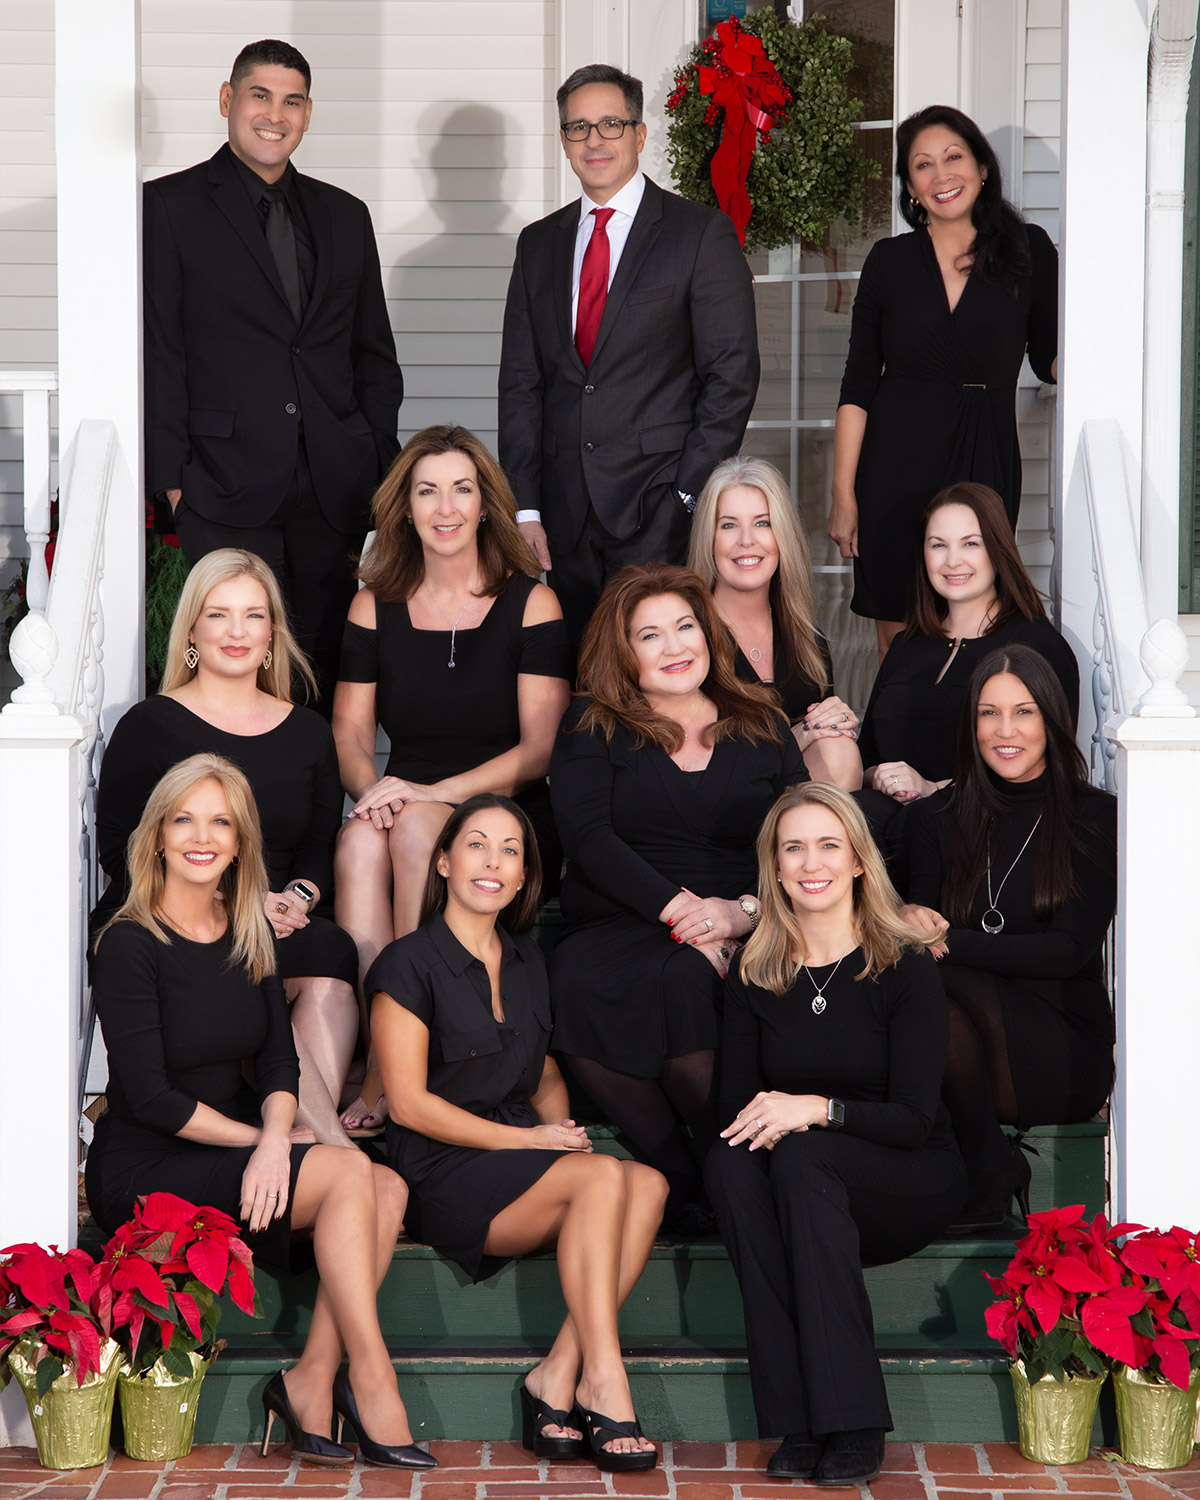 Staff all dressed in black posed on white front steps of the office